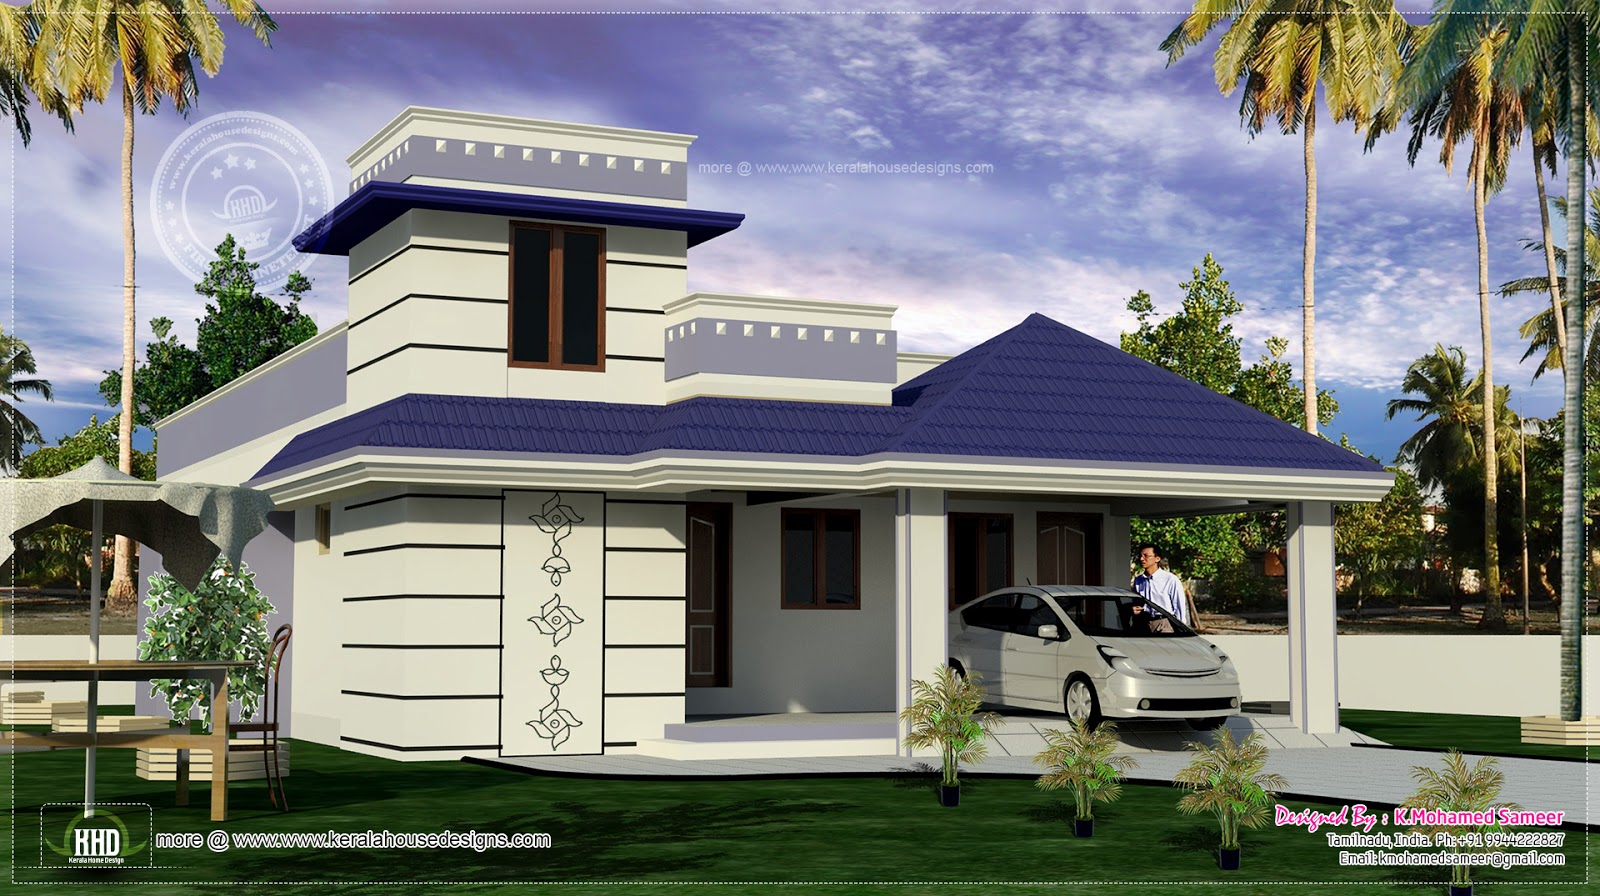 1700 one floor for south indian home kerala home for Tamilnadu house models